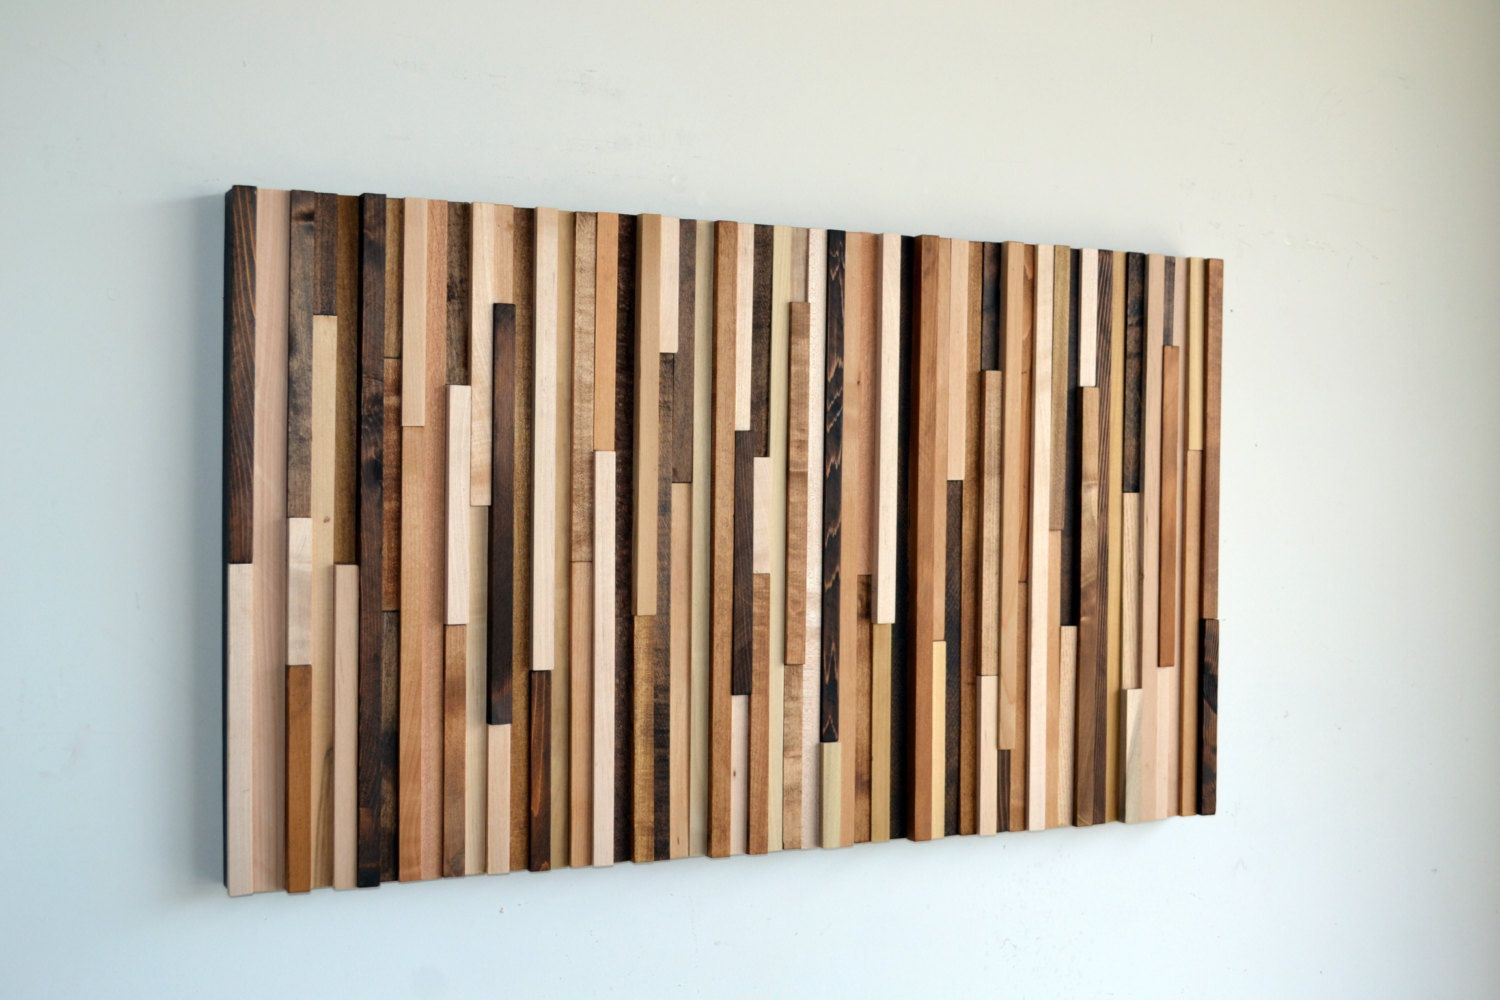 Wood Wall Art - Wood Art - Reclaimed Wood Art - Wall Installation 24X40 - Wood Wall Art - Wood Art - Reclaimed Wood Art - Wall Installation